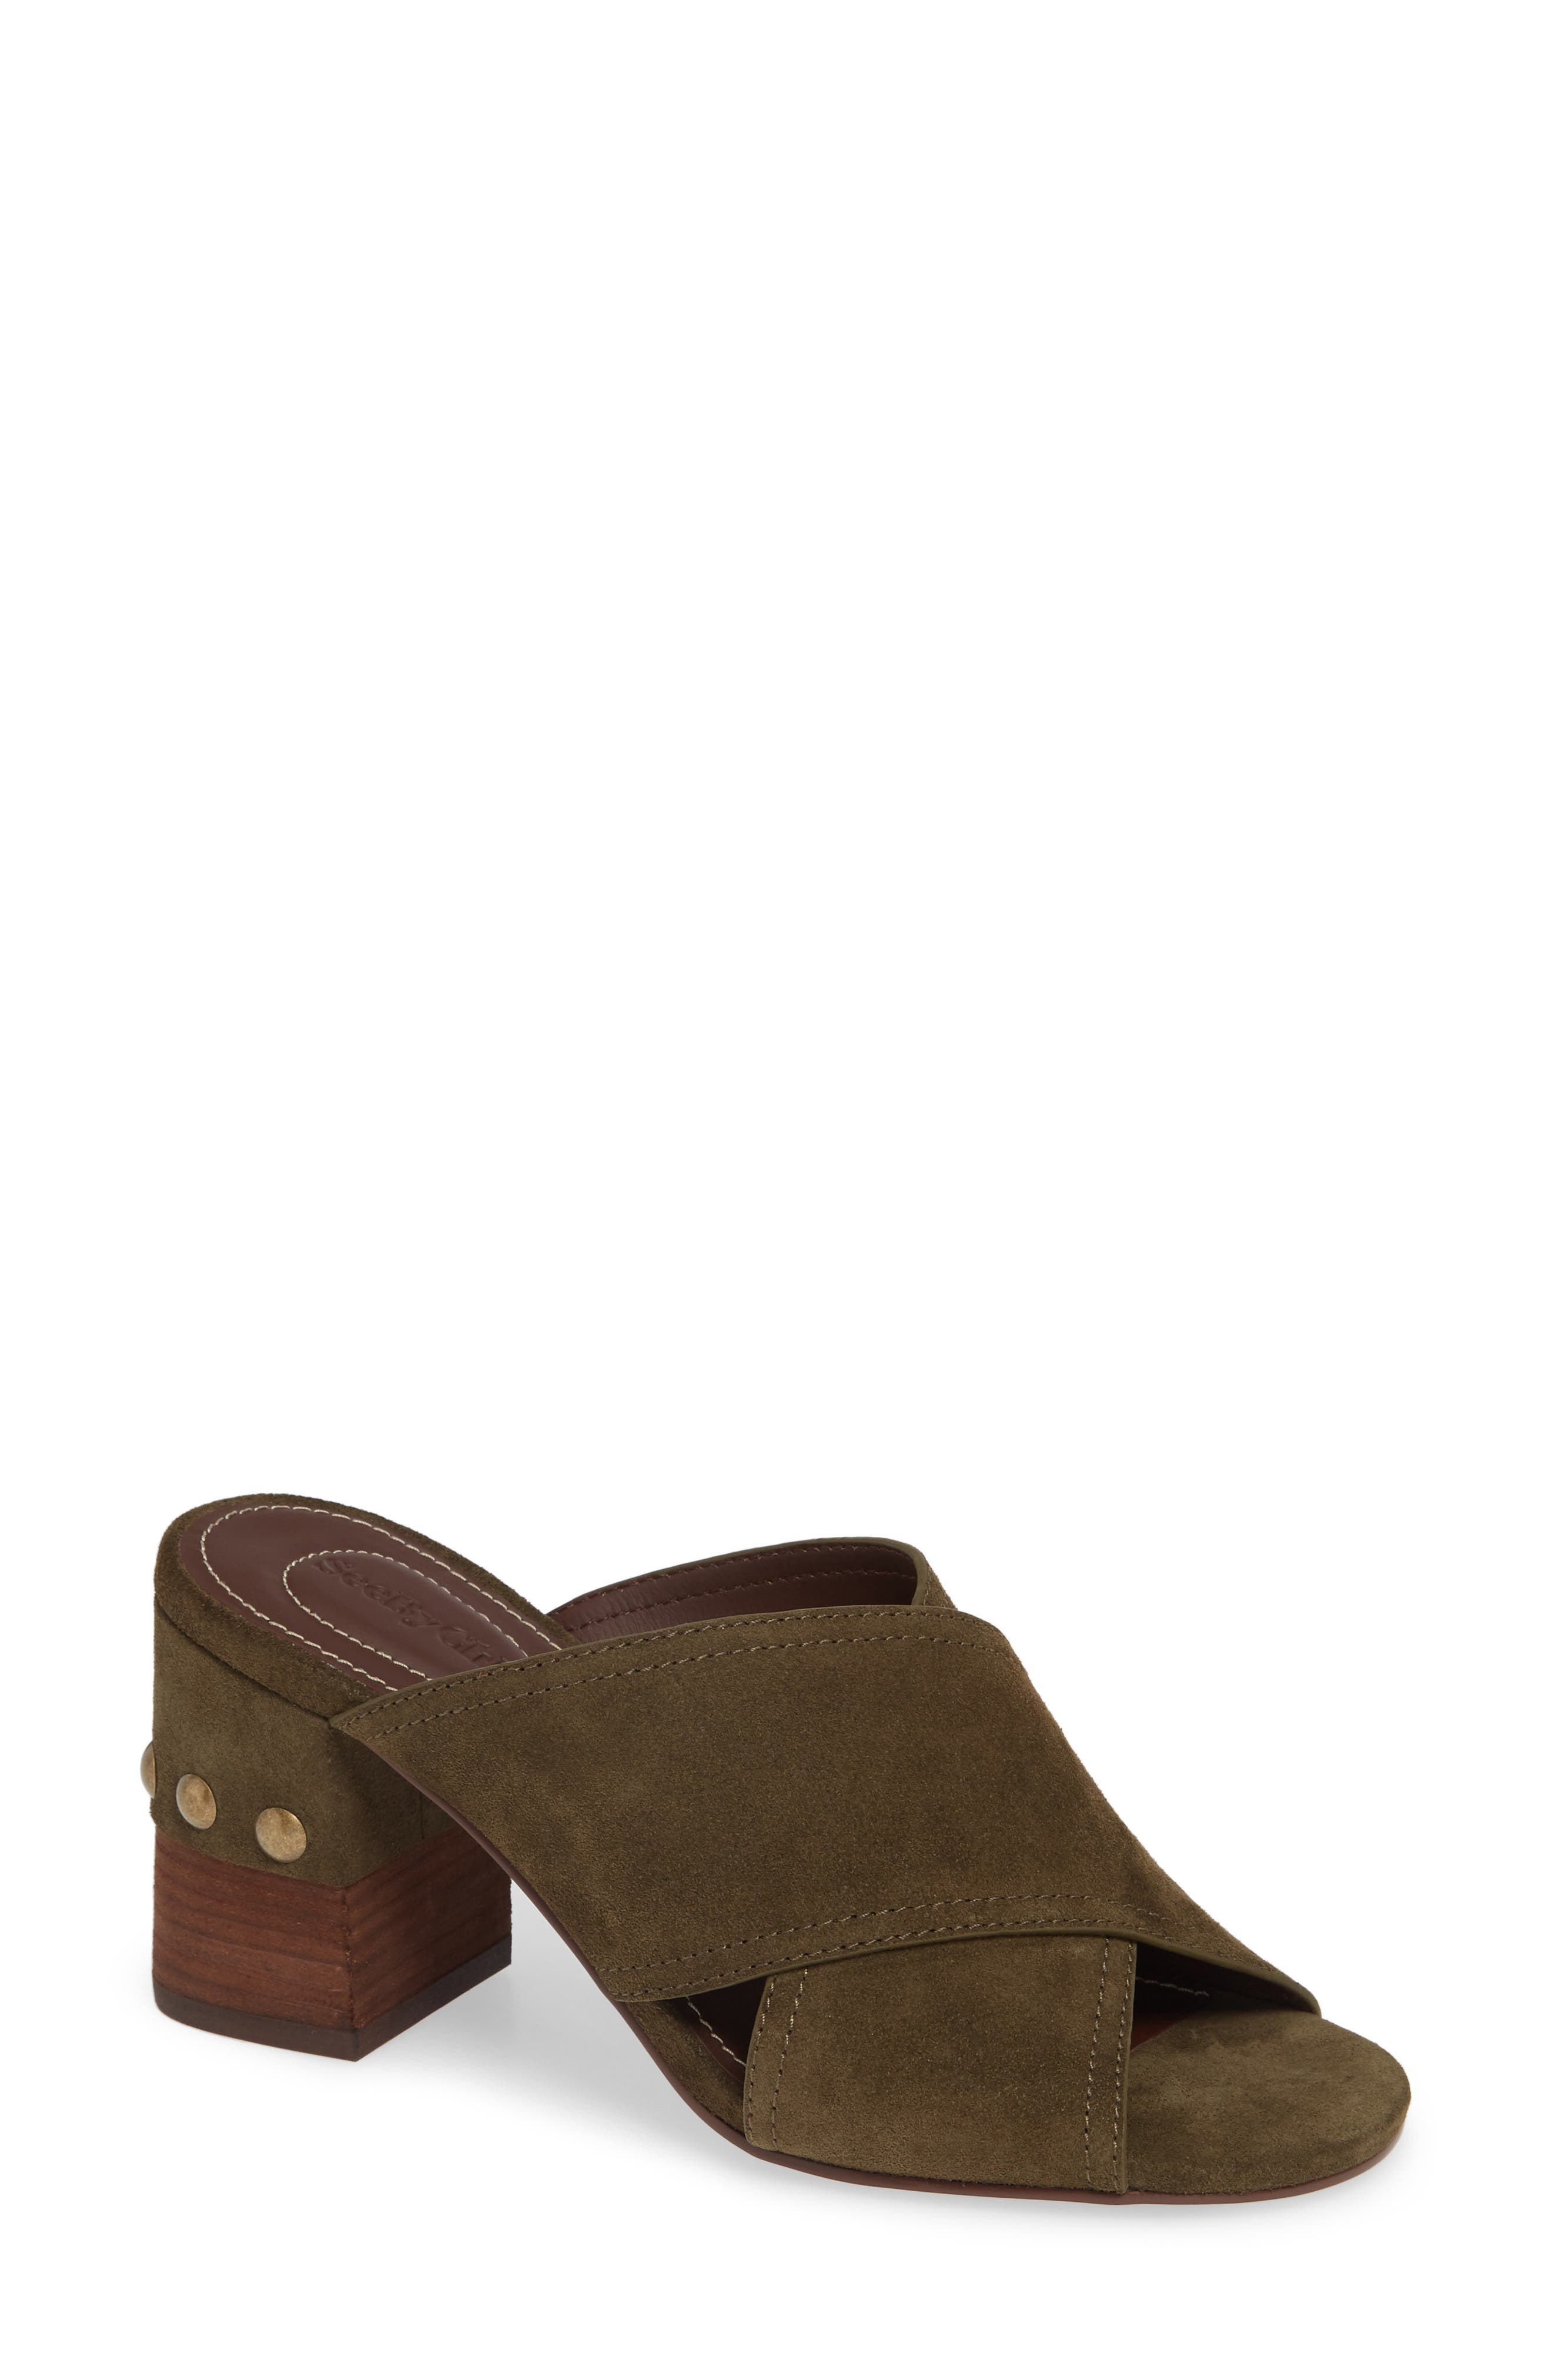 See By Chloe Marta Suede Slide, Green